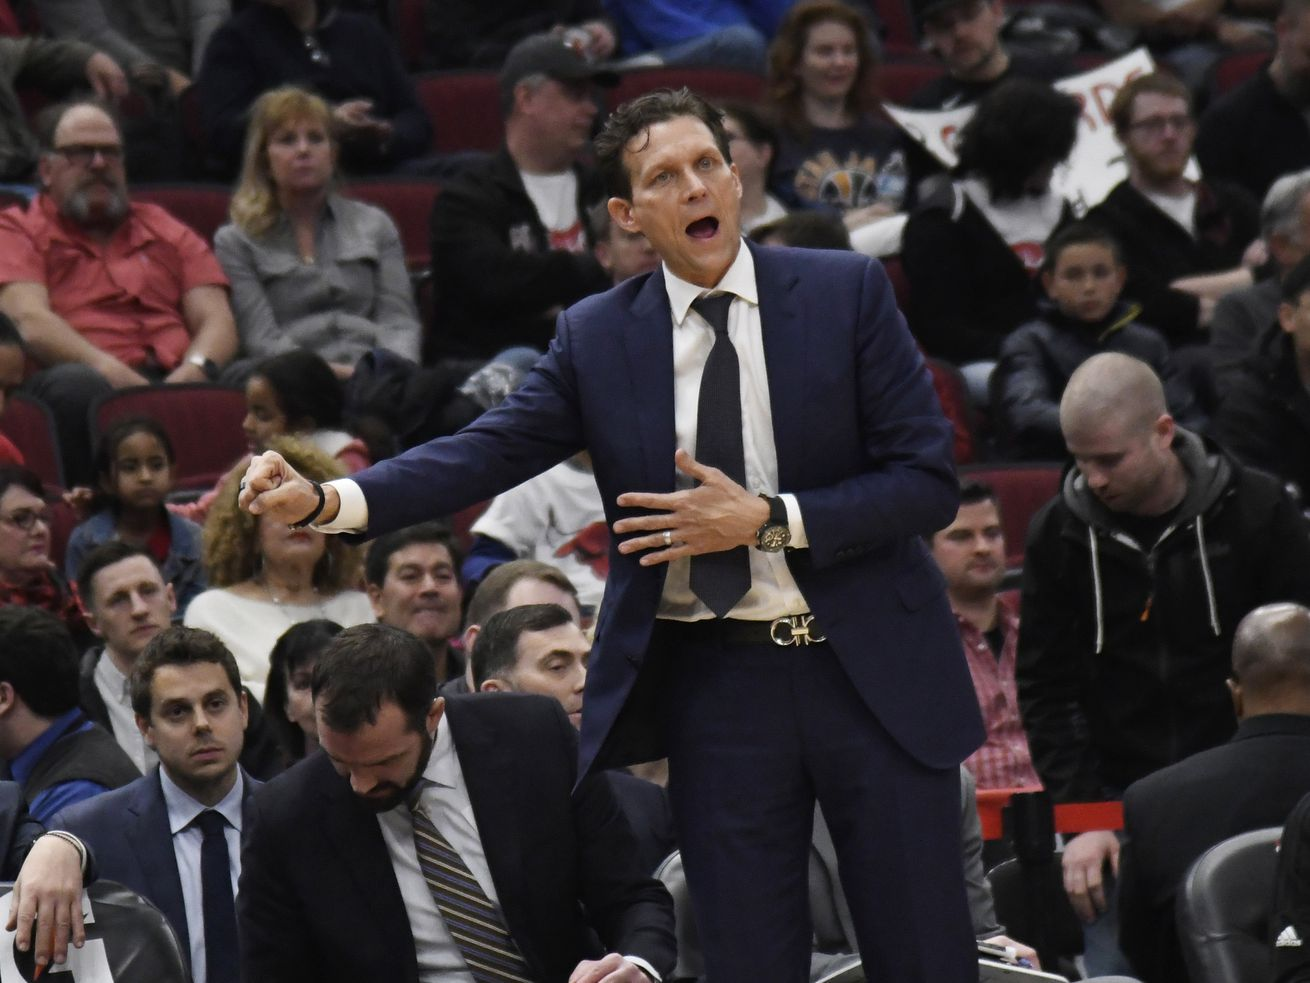 20190324 Utah Jazz coach Quin Snyder gestures to his team during the second half of an NBA basketball game against the Chicago Bulls on Saturday, March 23, 2019, in Chicago. The Jazz won 114-83. (AP Photo/David Banks) David Banks FR165605 AP